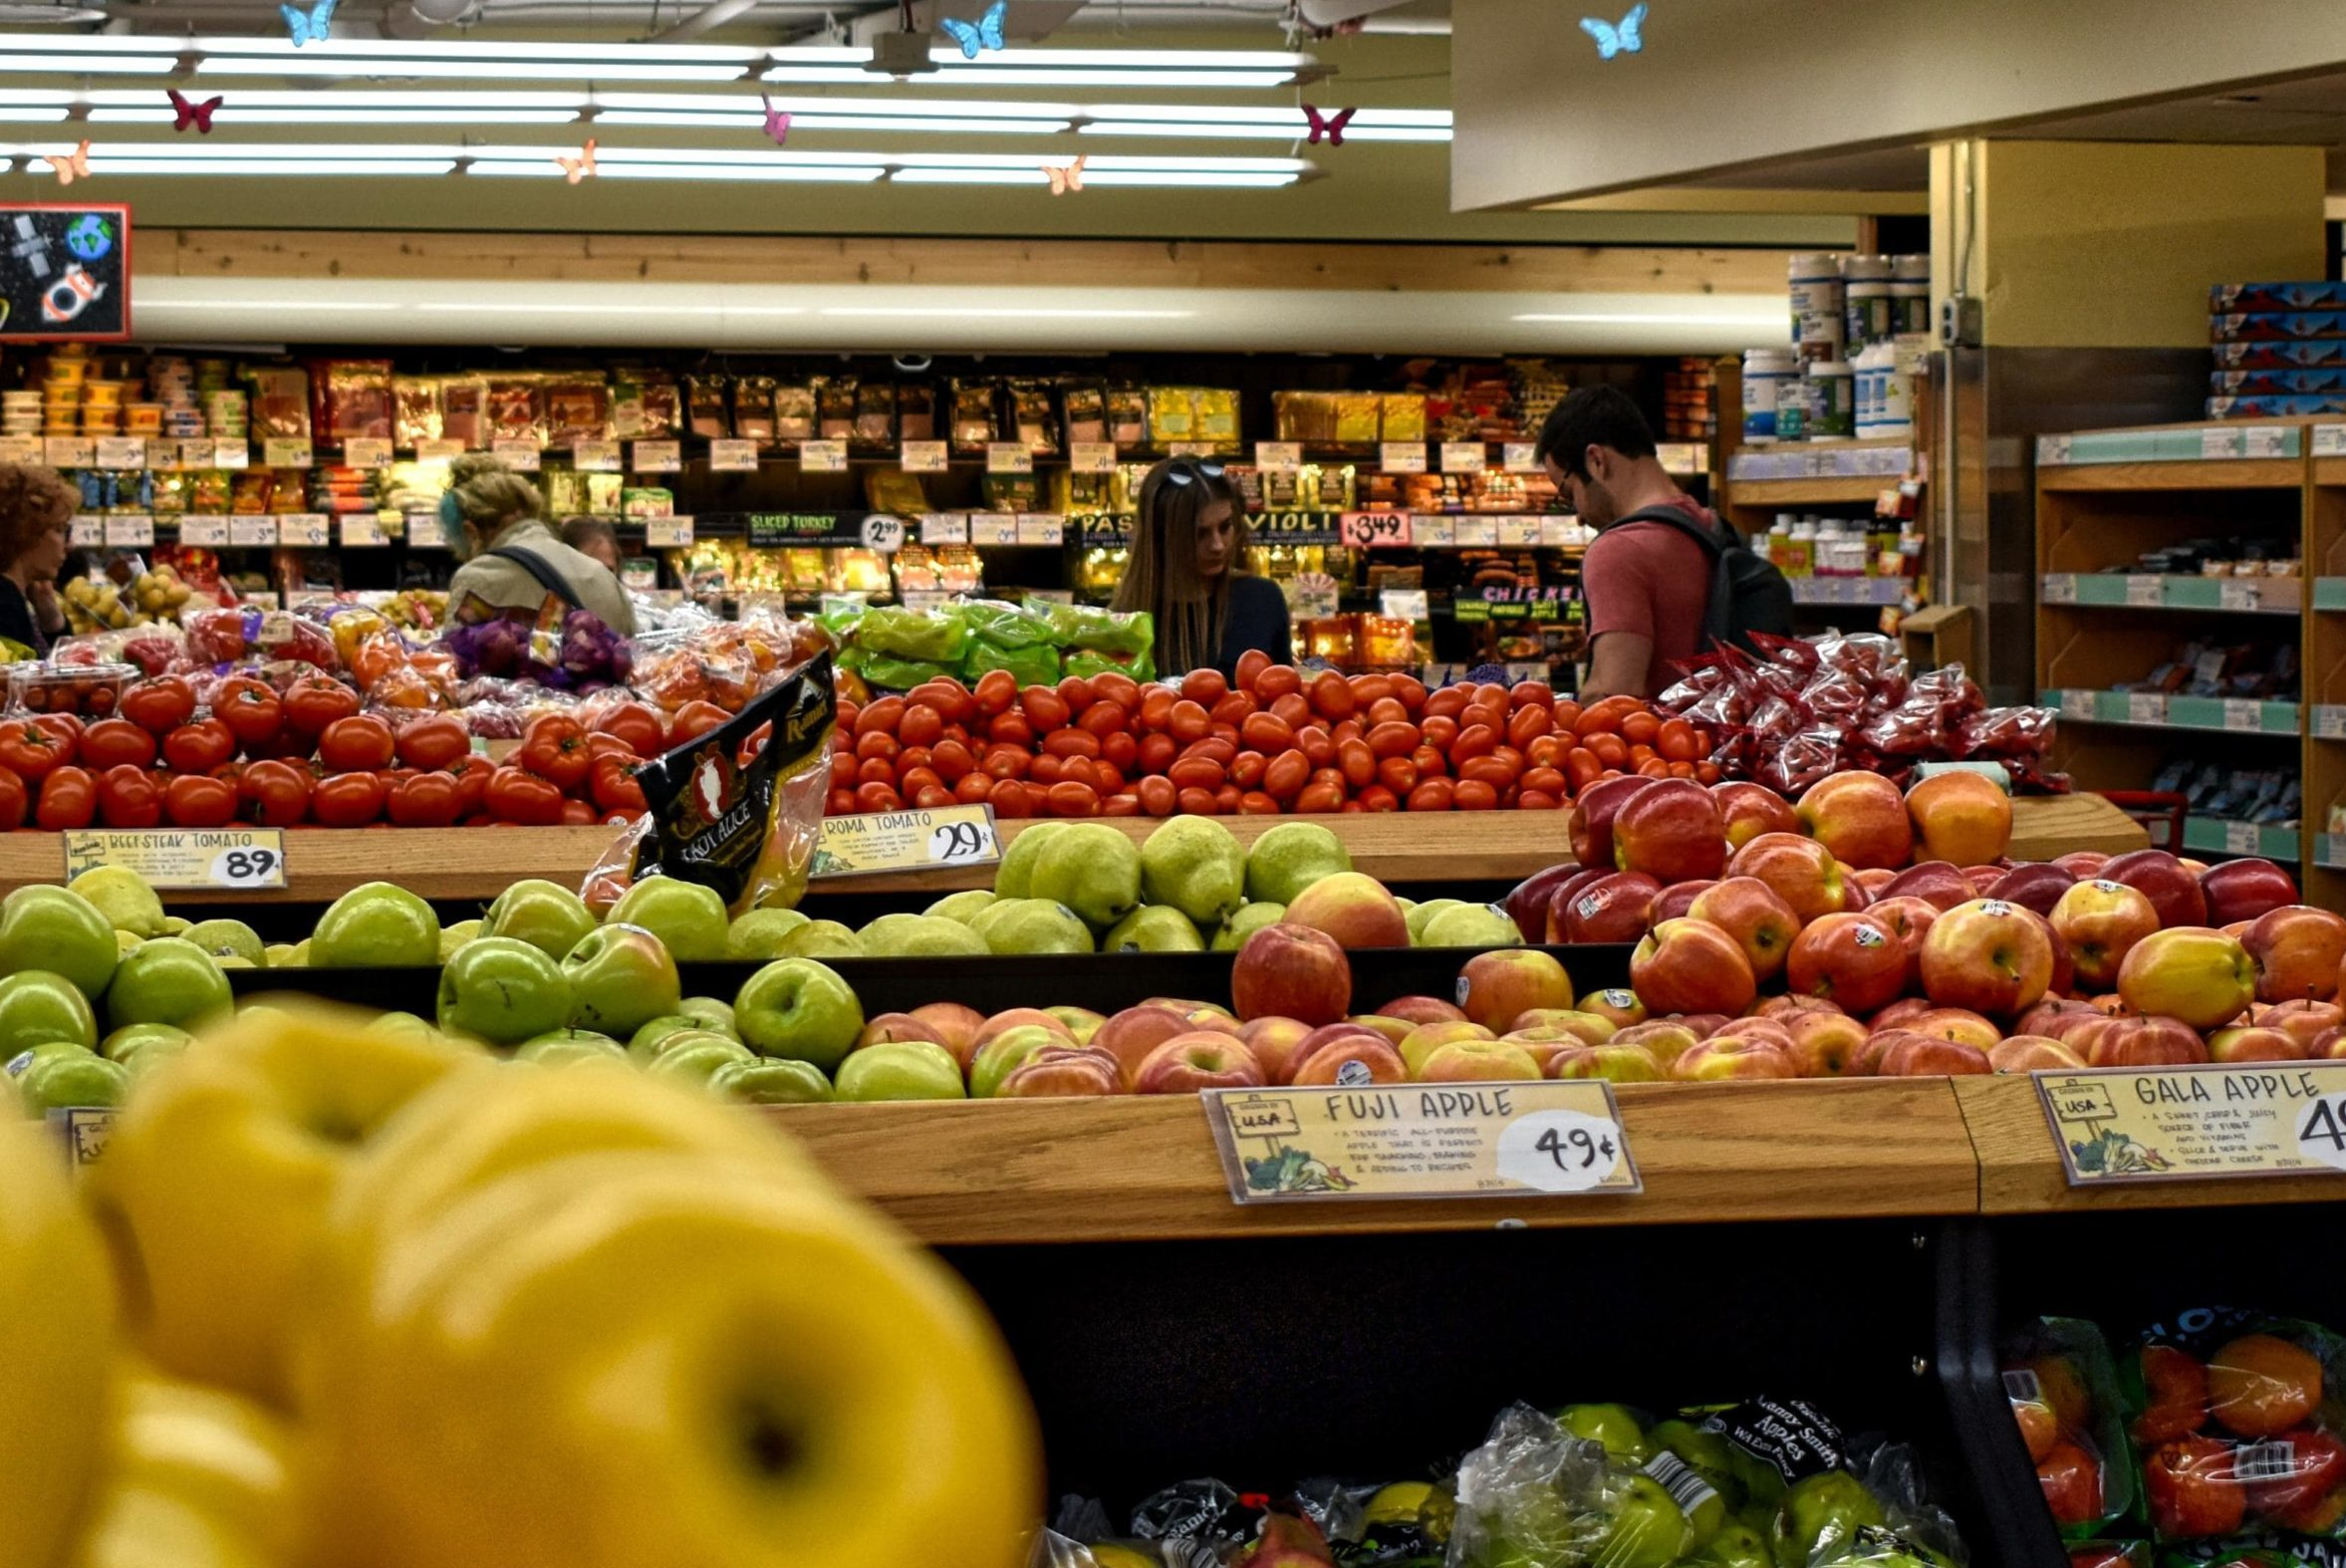 Fruit Section of a Grocery Store